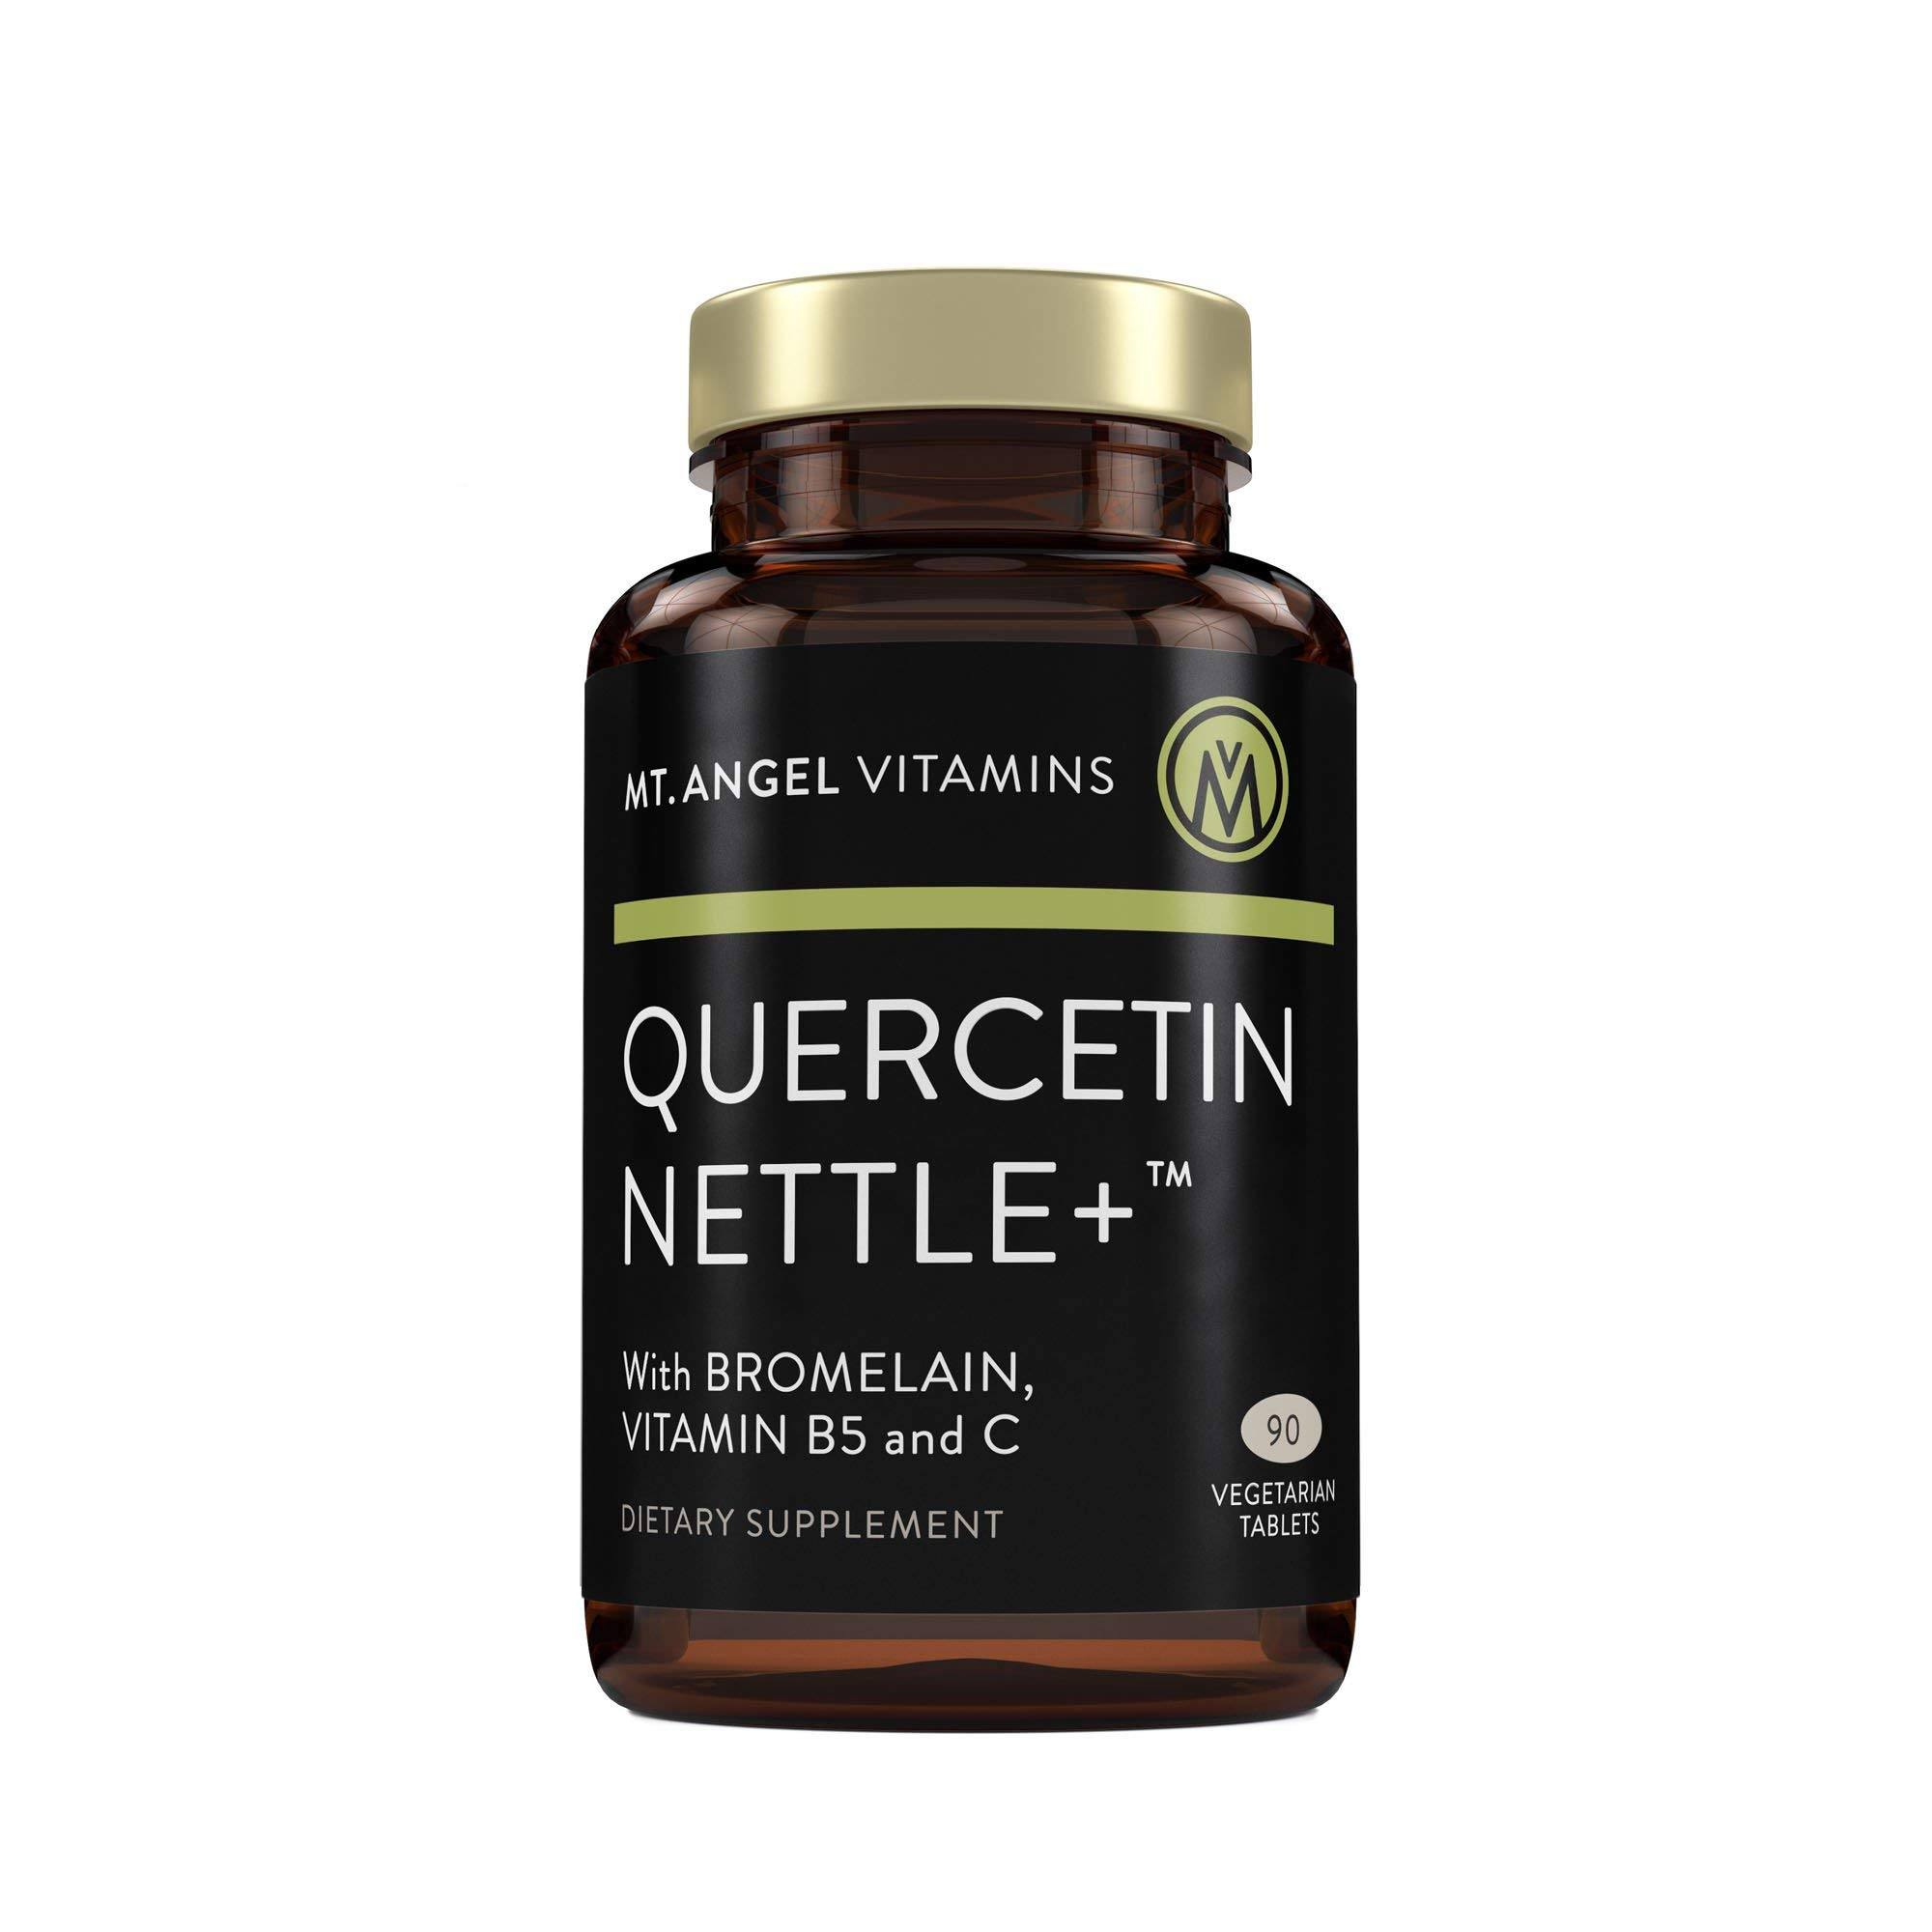 Mt. Angel Vitamins - Quercetin Nettle+, Natural Supplement for Sinus and Nasal Health, Seasonal Discomfort and Healthy Histamine Levels, Supports Immune System (90 Vegetarian Tablets)